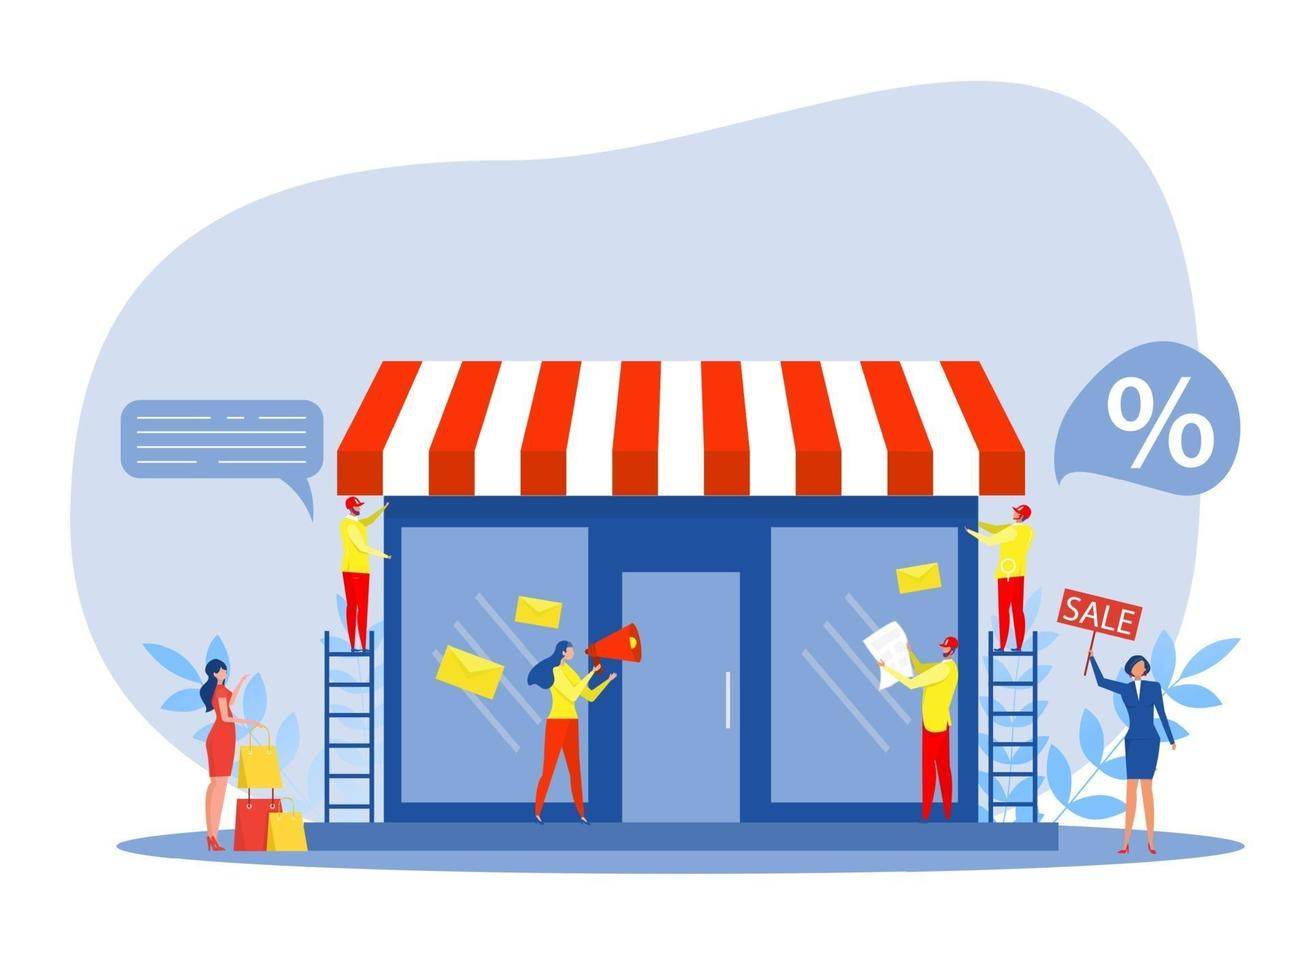 Franchise shop business, People shopping and Starting Small Franchise vector